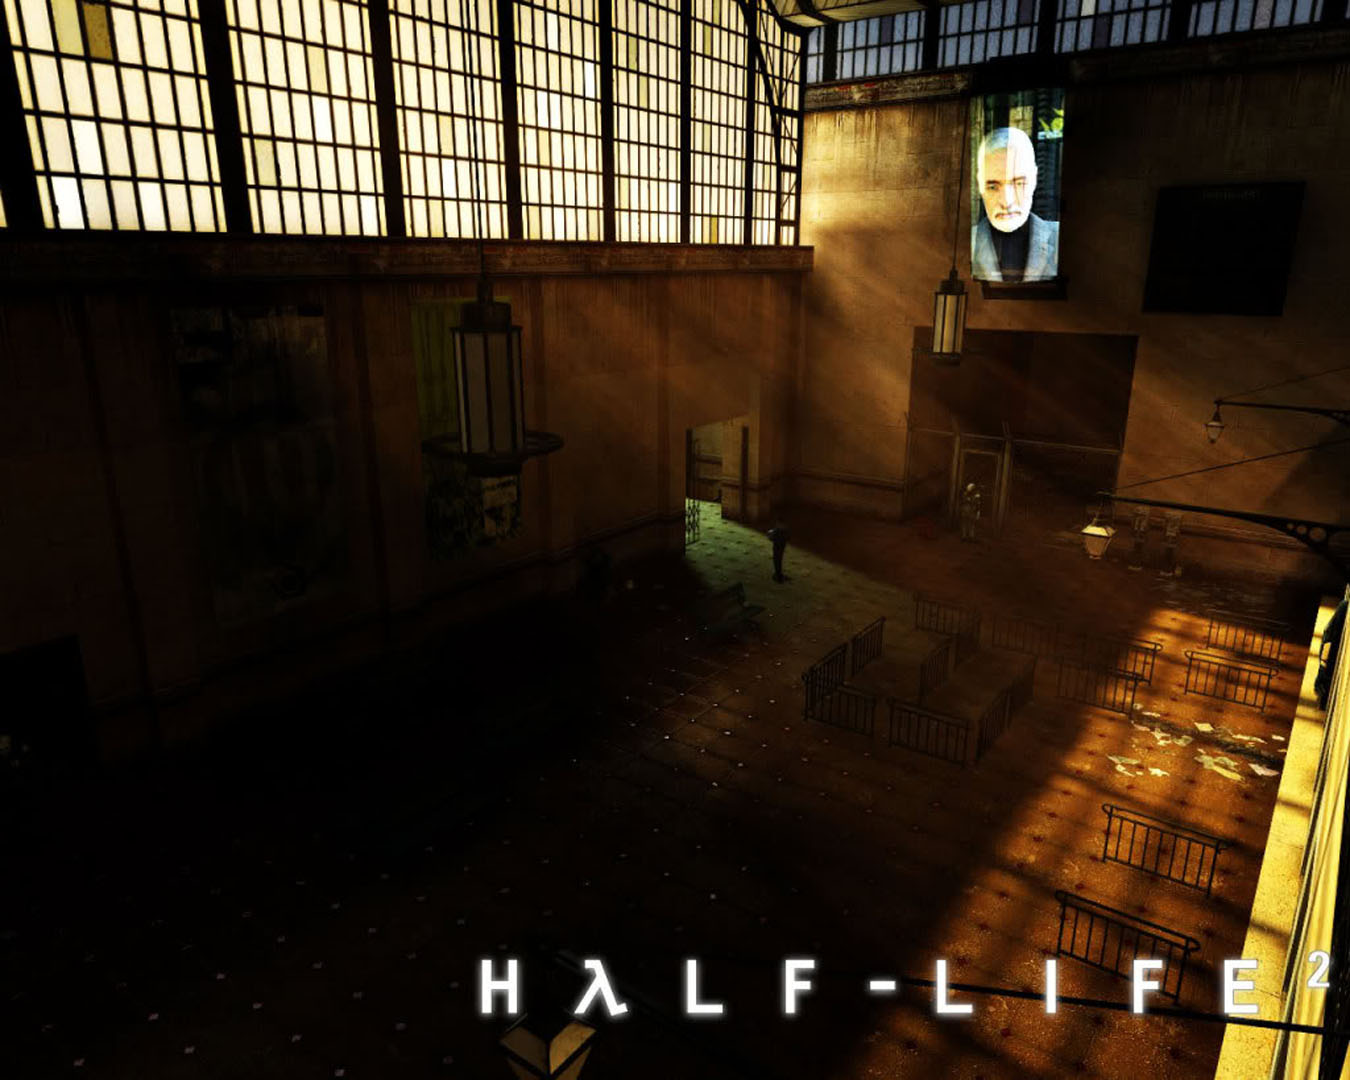 Foyer Wallpaper Game : Empty railway station foyer in city half life wallpaper